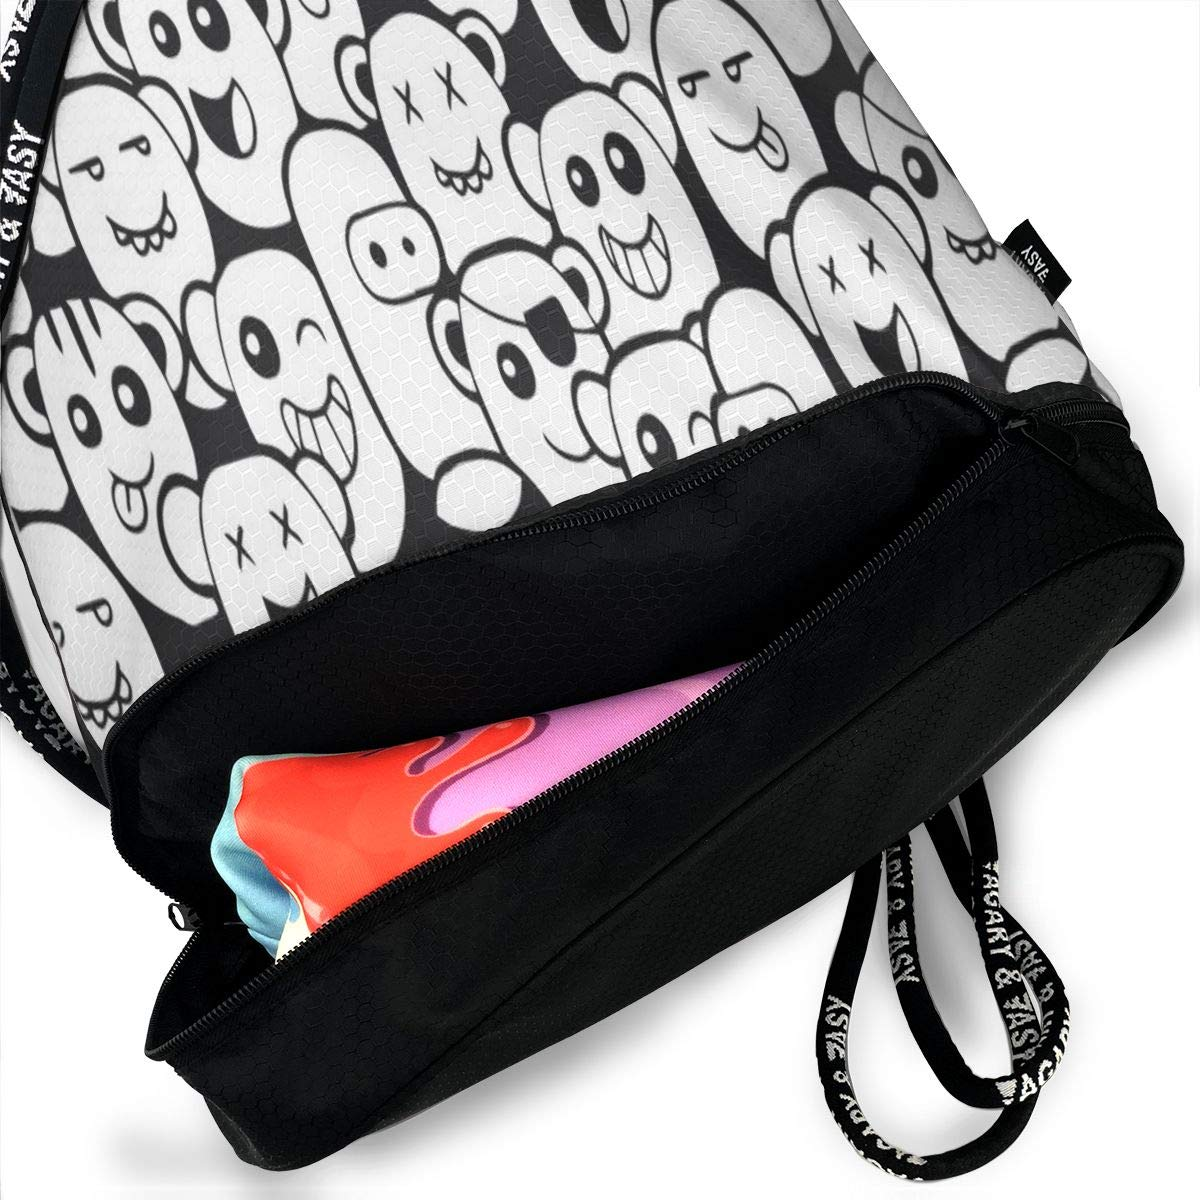 Bear Pattern Beam Mouth Drawstring Backpack Waterproof Shoulder Strap Leisure Backpack Portable Gym Bag